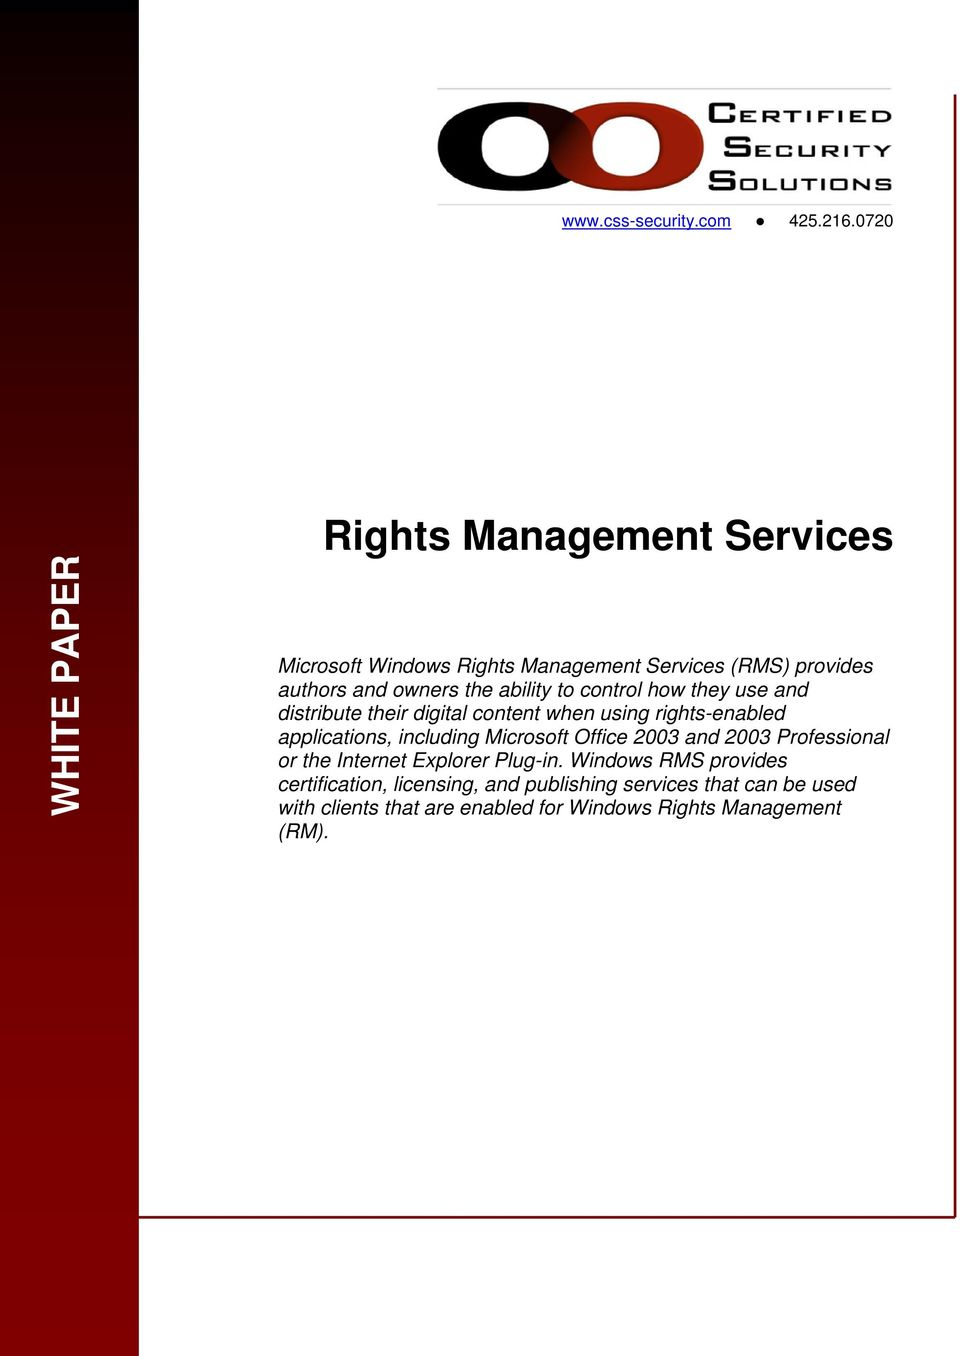 distribute their digital content when using rights-enabled applications, including Microsoft Office 2003 and